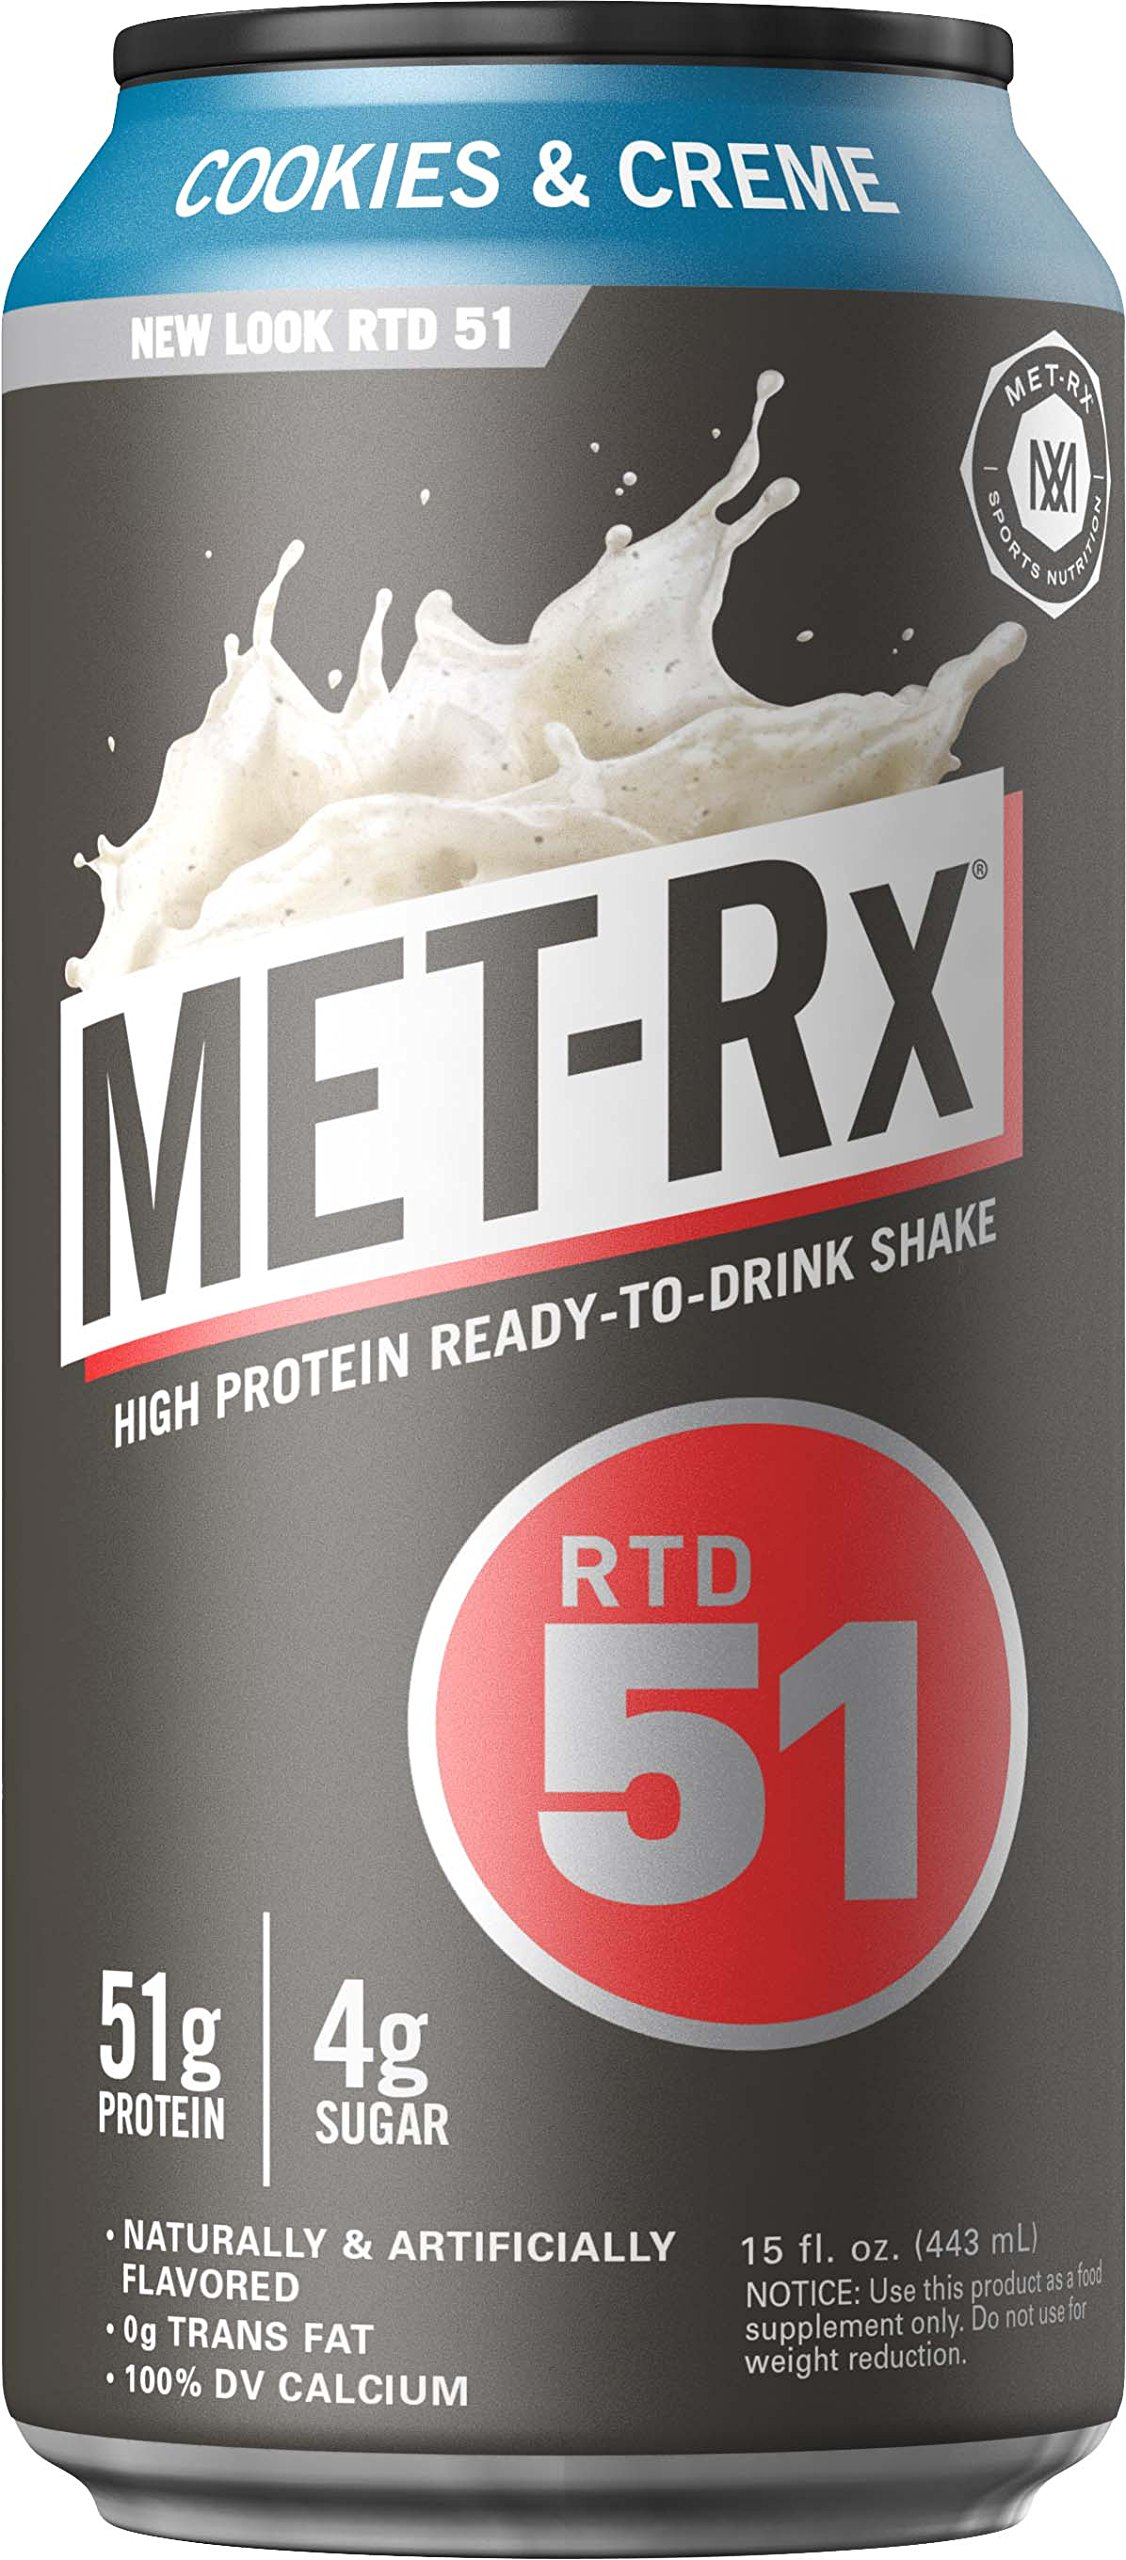 MET-Rx RTD 51 Protein Shake, Ready to Drink and Convenient for Meal Replacement, Low Carb, Cookies and Creme, 15 oz, 12 Count